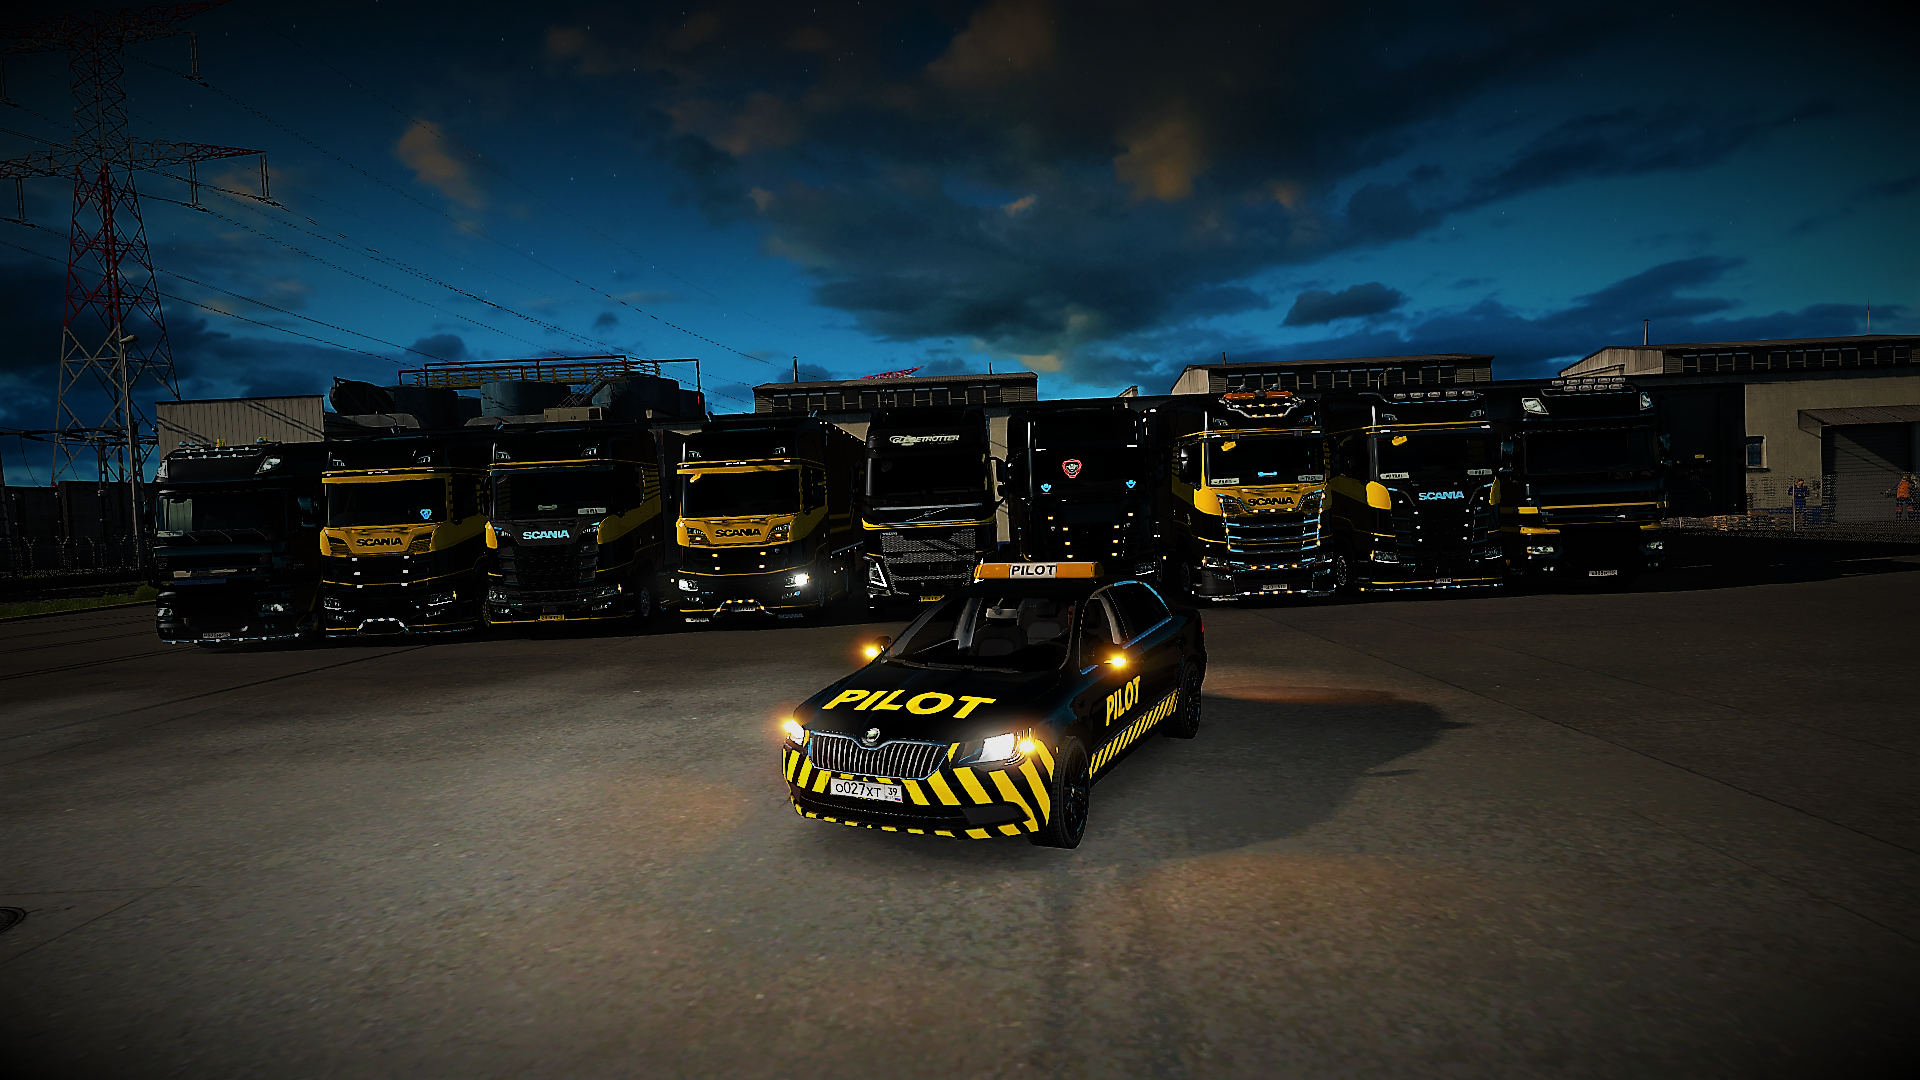 ets2_20190716_233456_00111.png